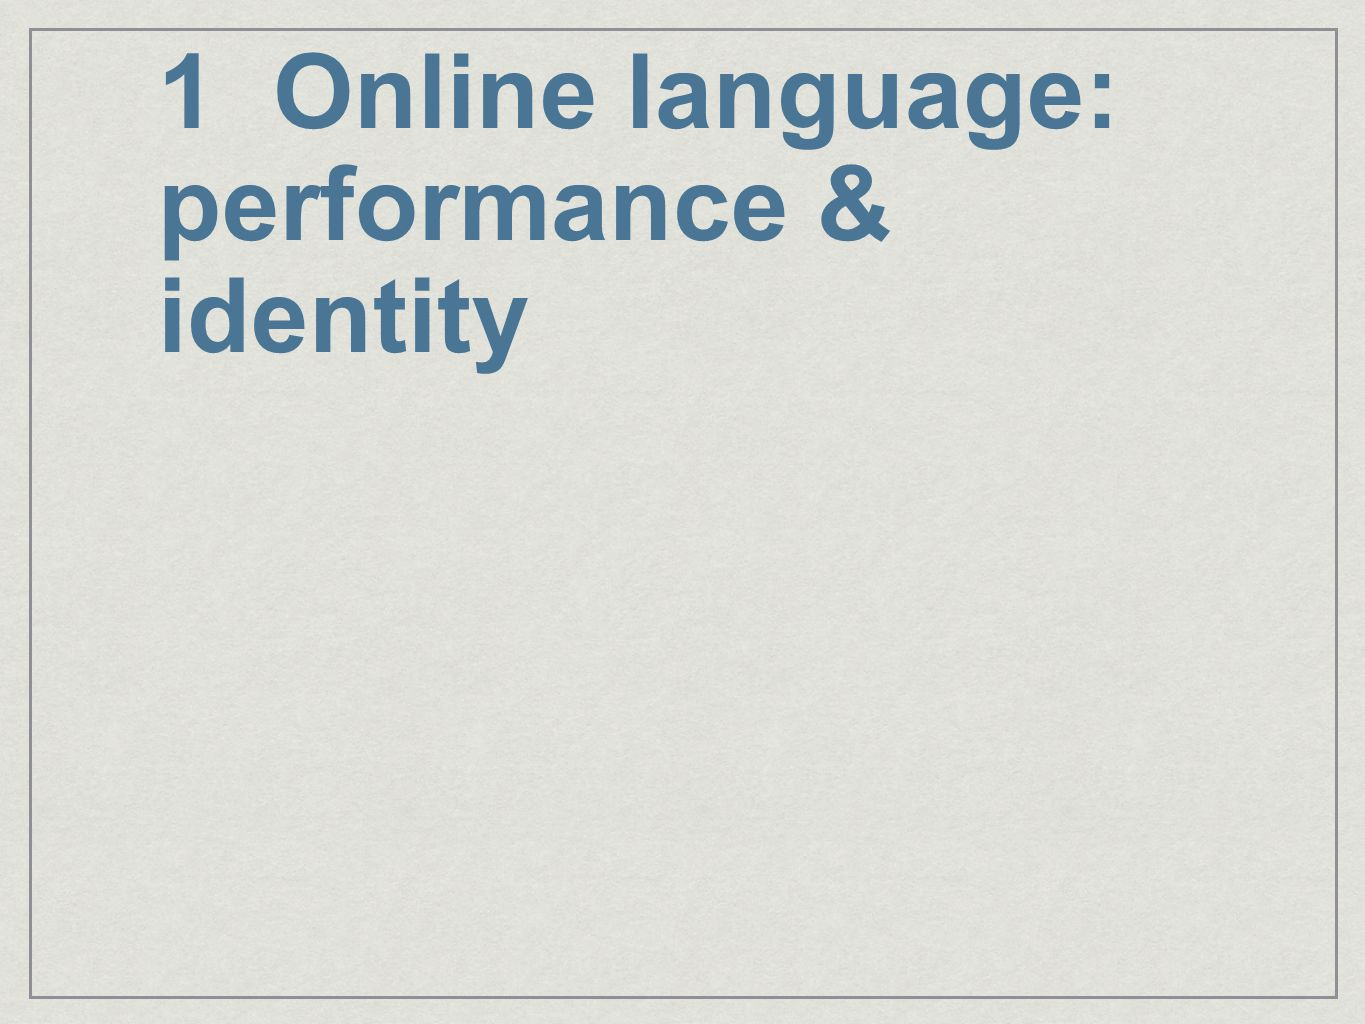 1 Online language: performance & identity